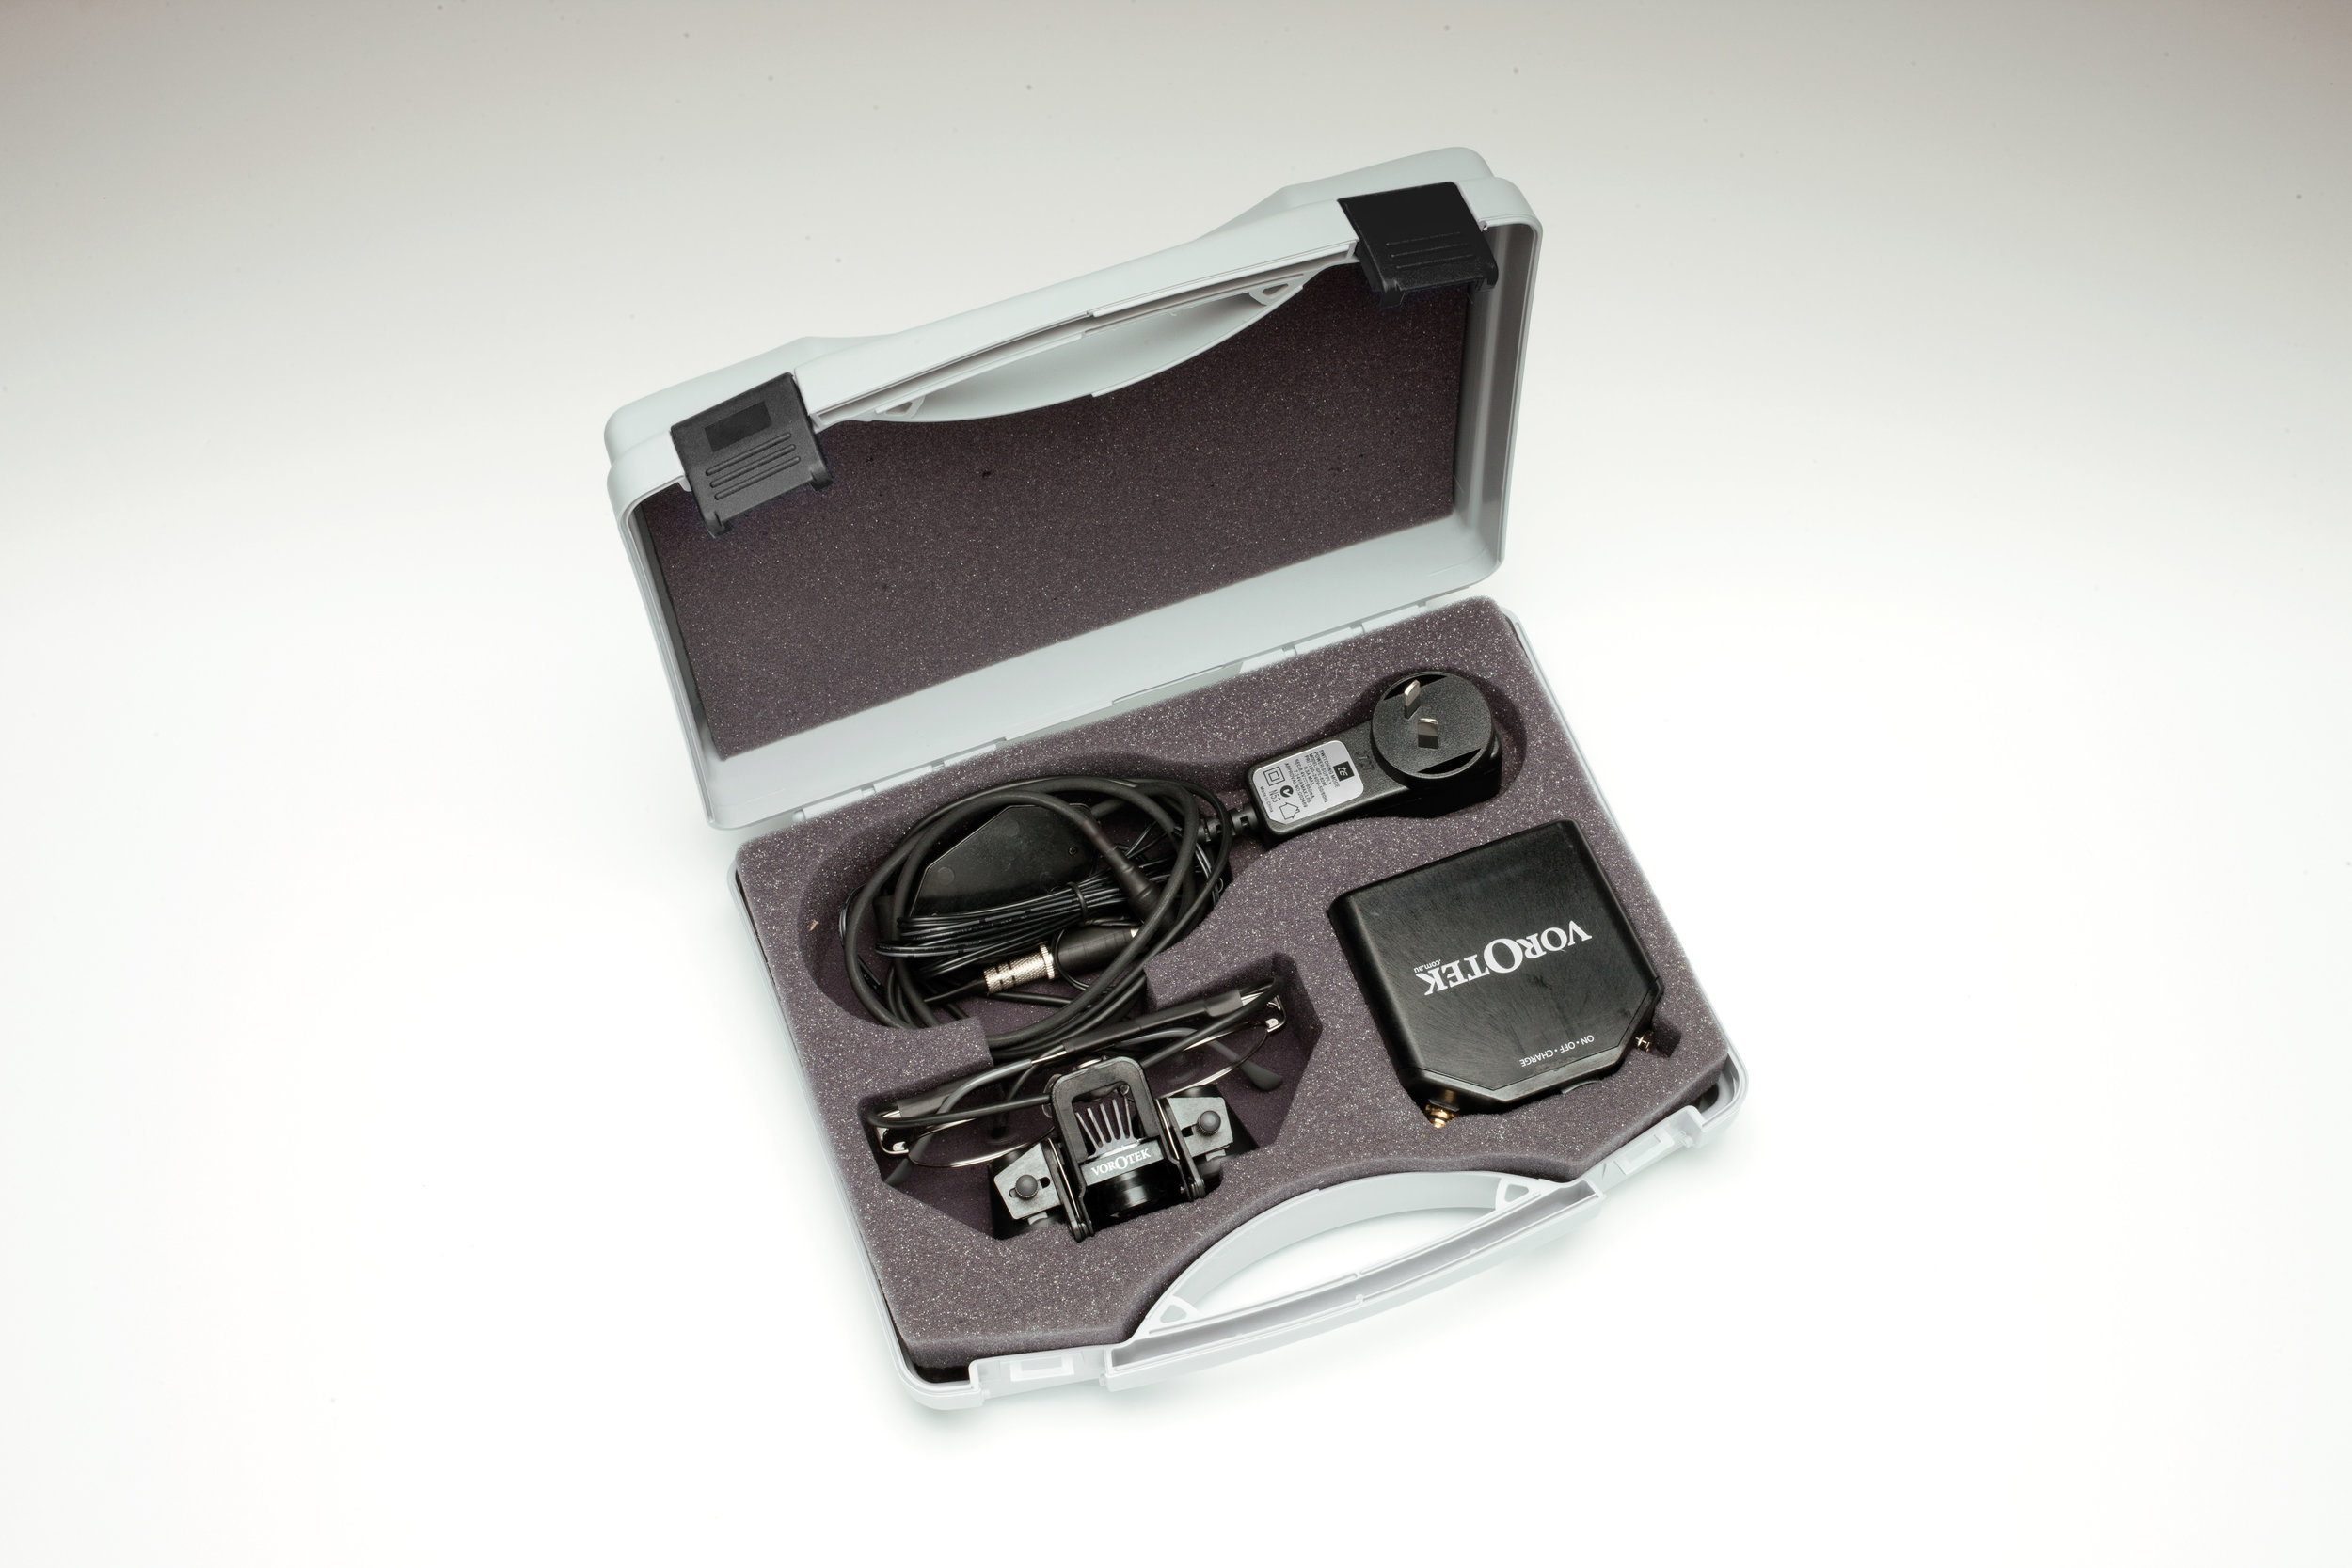 L Scope Kit - All L Scopes come with L Scope, Battery, Charger, and Protective Carrying Case